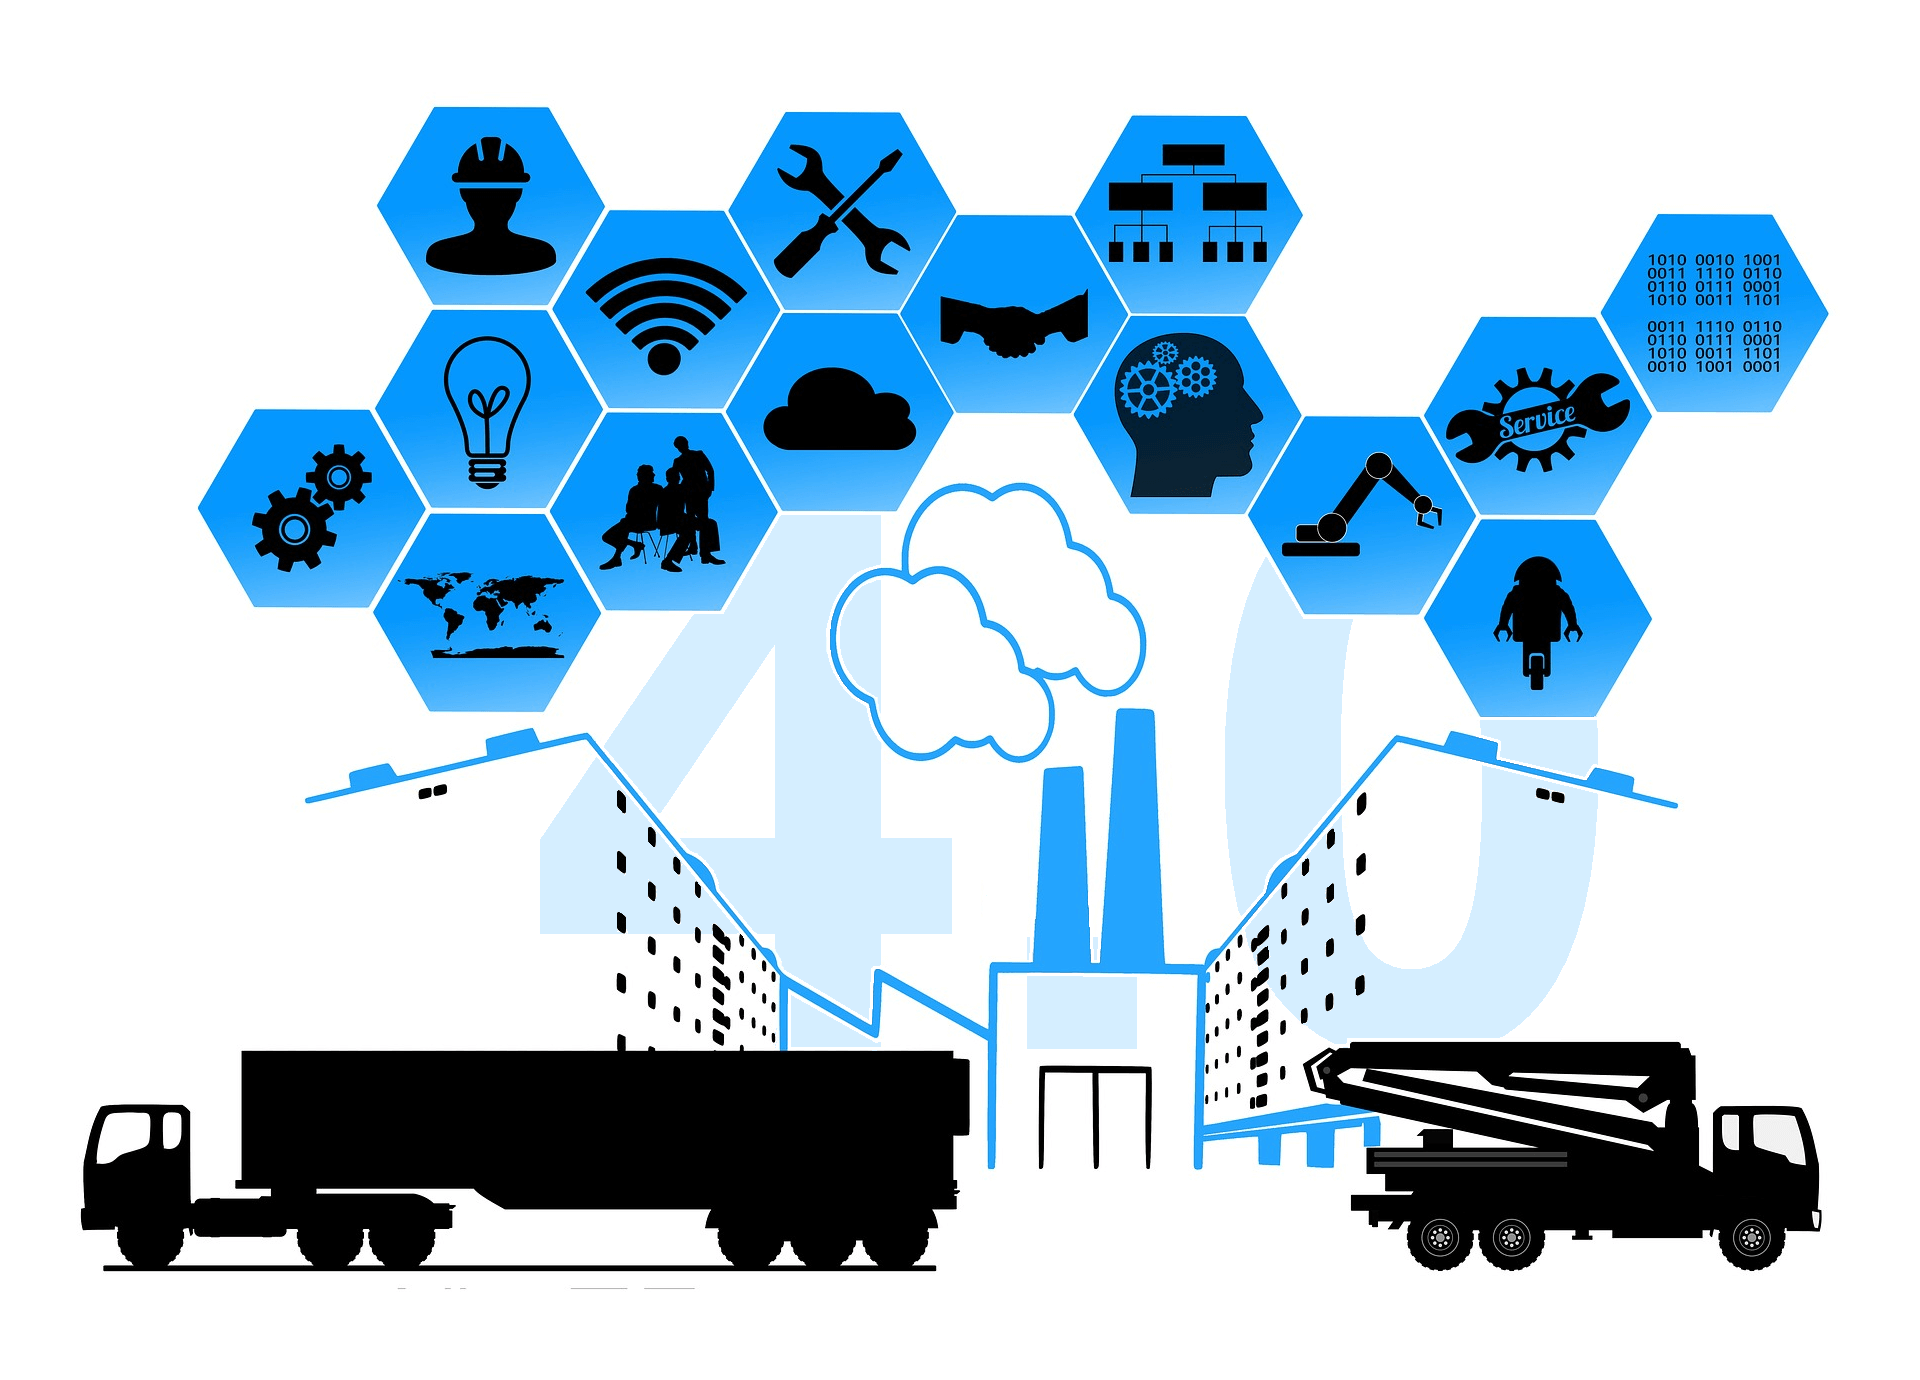 Industry 4.0 - Industries Served